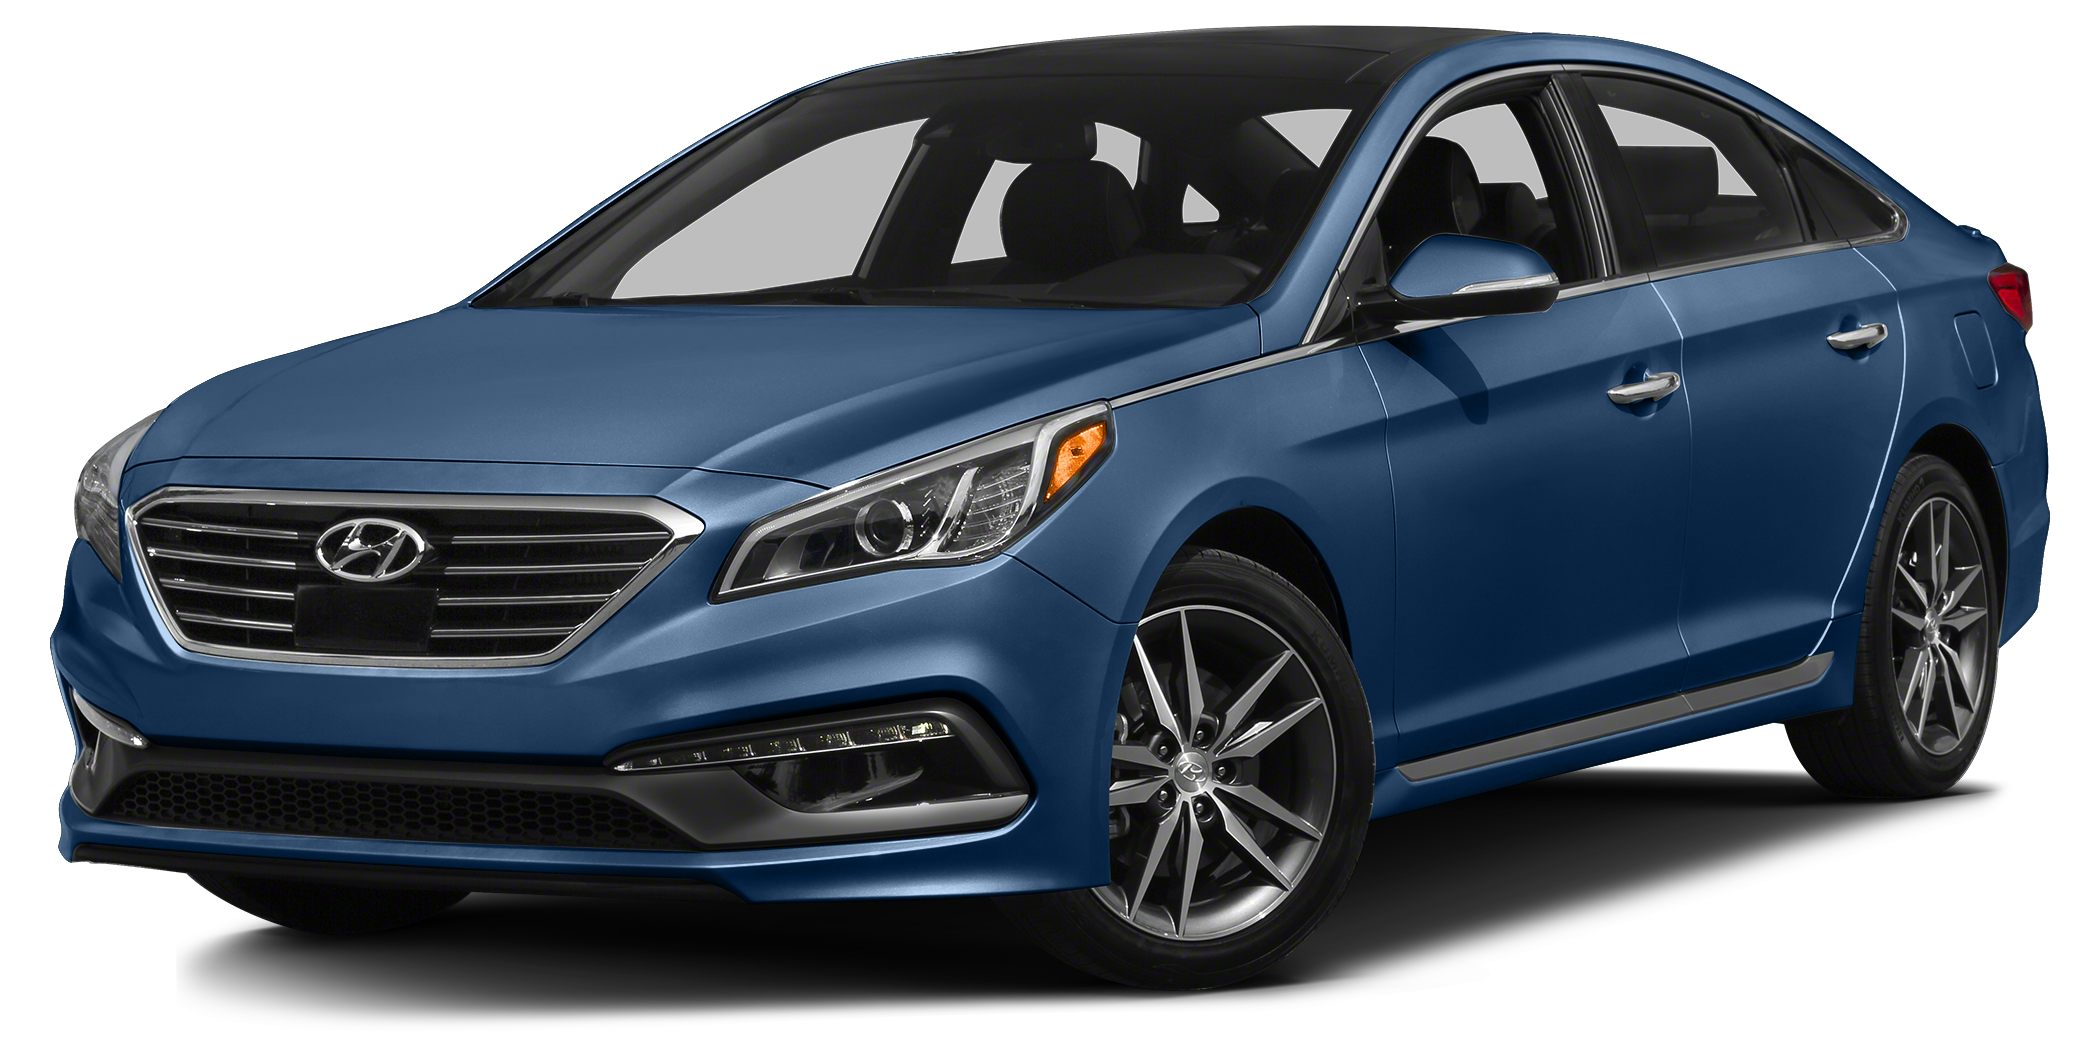 2015 Hyundai Sonata SE Price includes 1500 - Retail Bonus Cash Exp 0731 Miles 10Color Lak